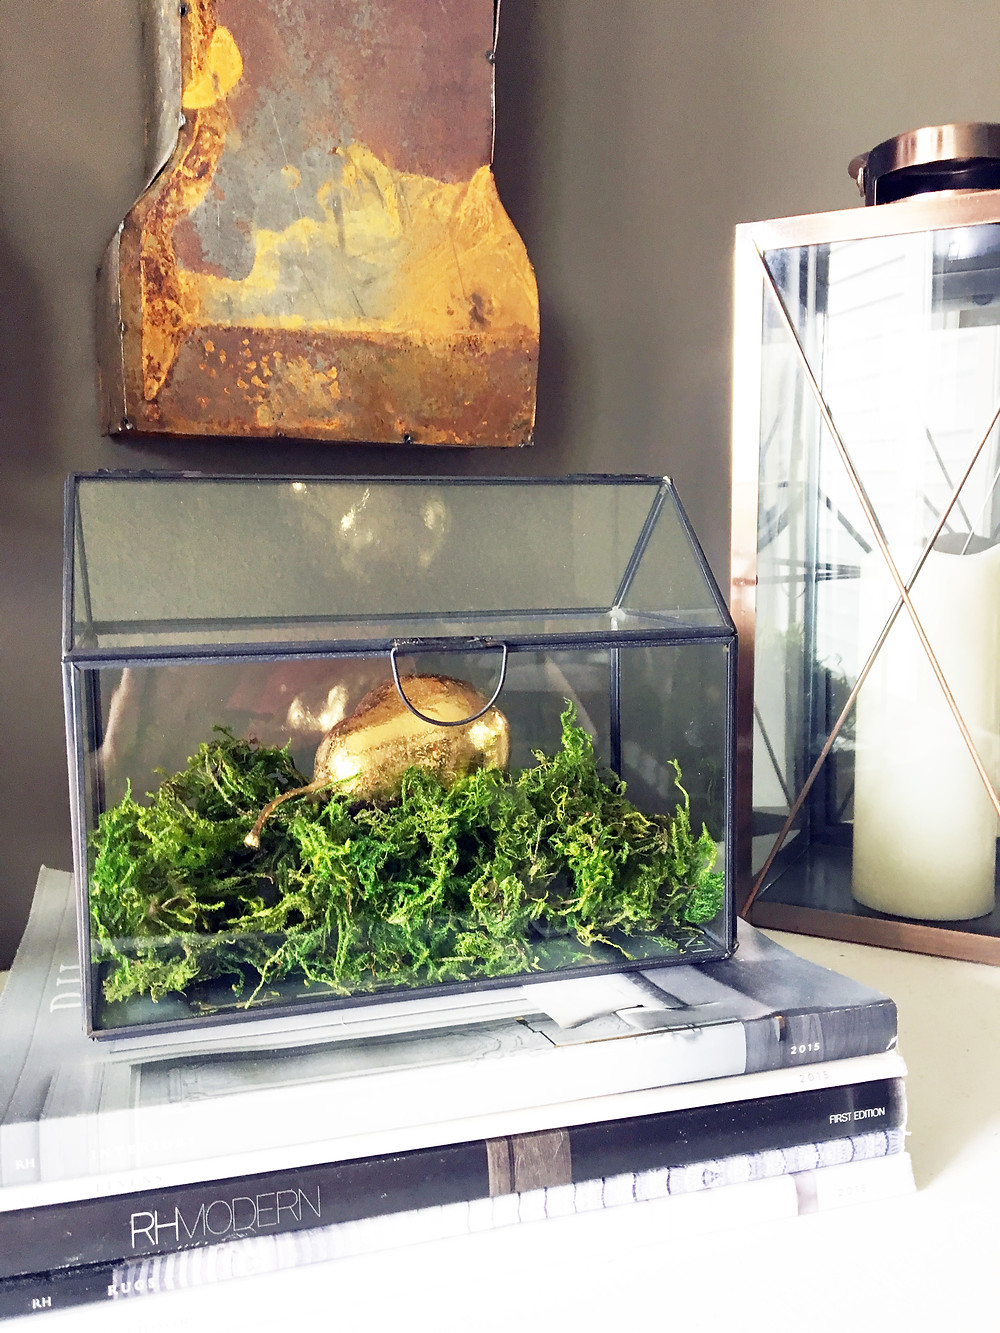 EH Design Blog - The Many Faces of Moss - Example with Moss in Terrarium